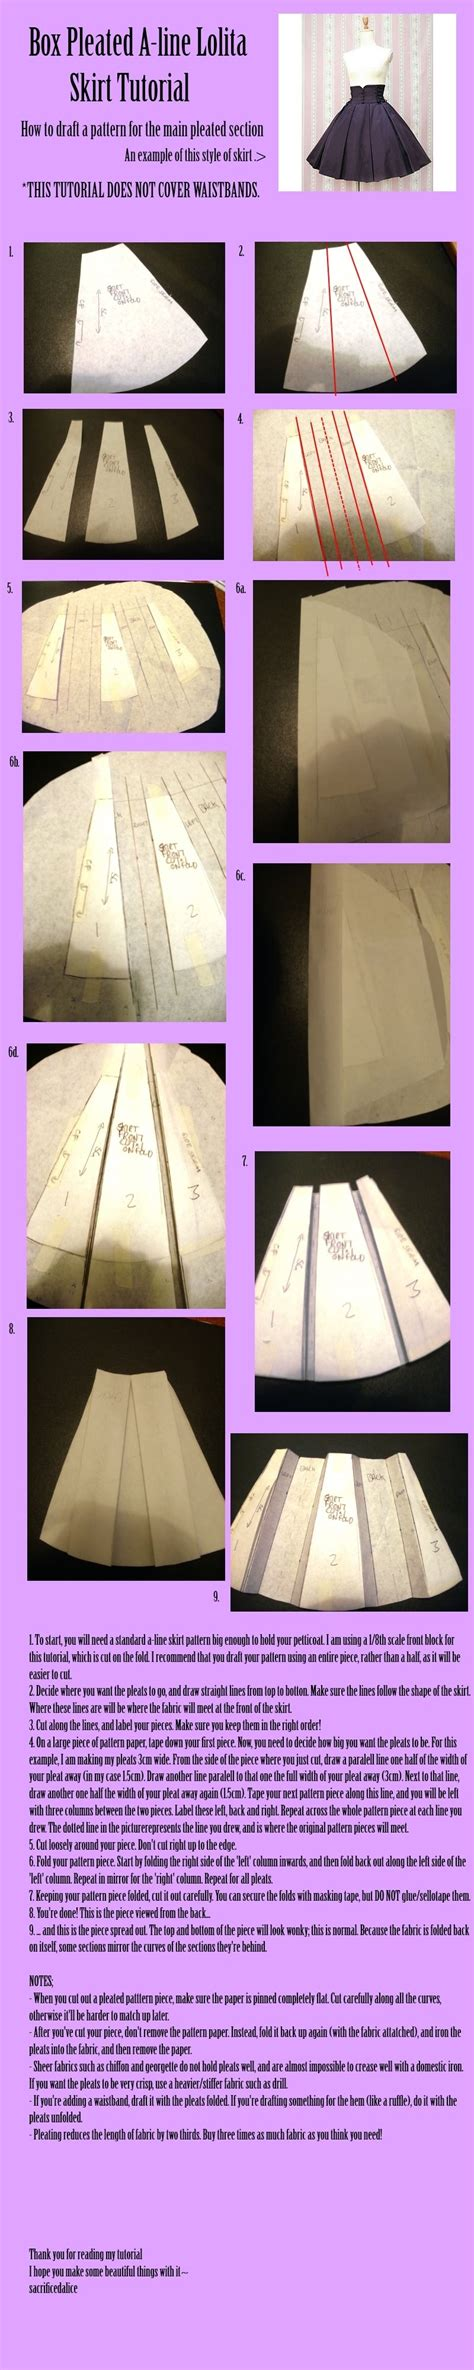 box pleated a line skirt tutorial pictures photos